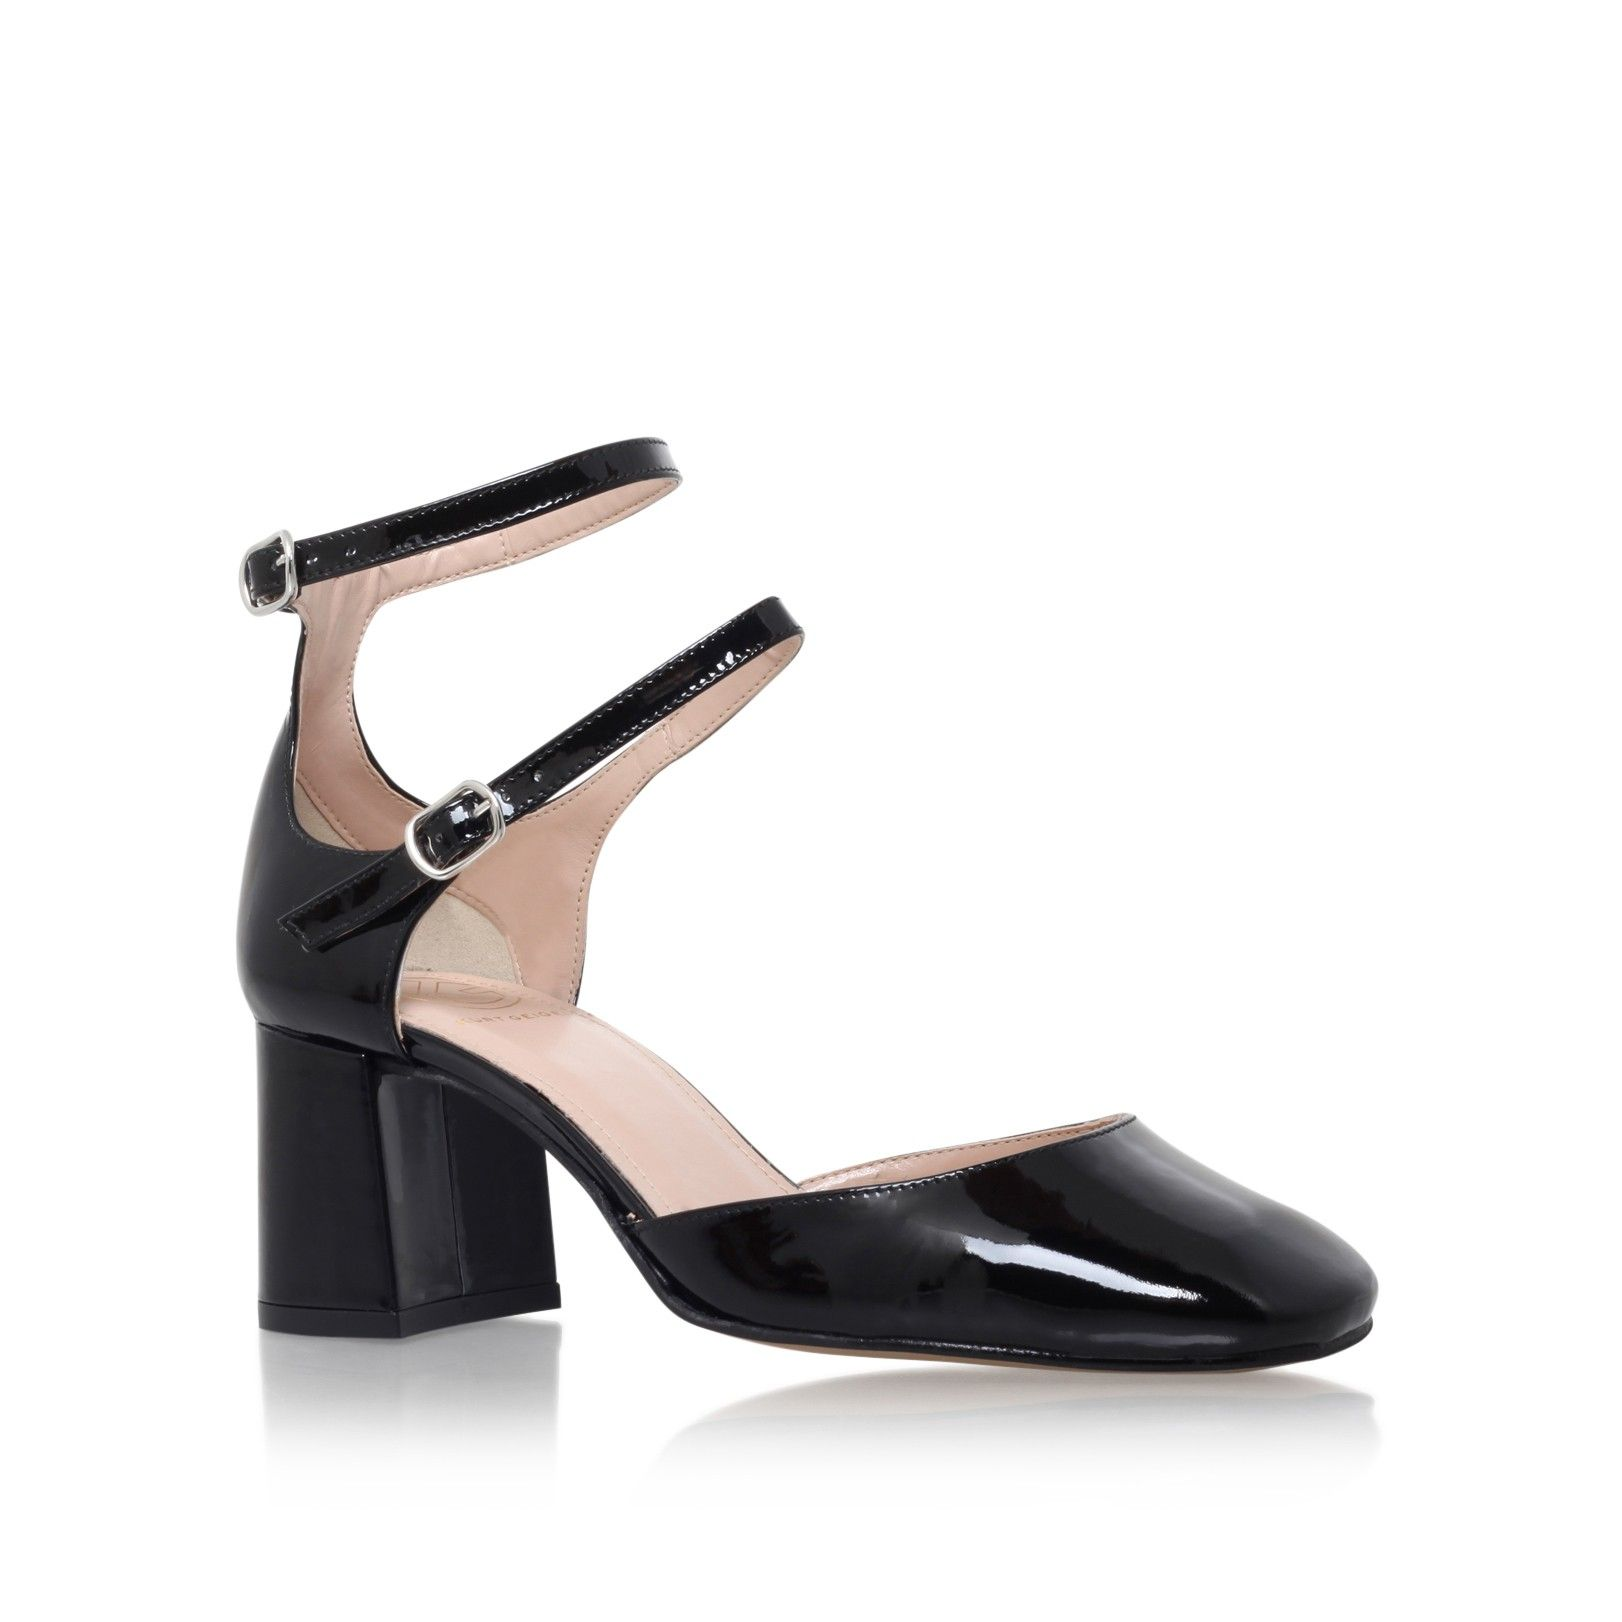 1b305f5df dolly black mid heel court shoes from KG Kurt Geiger